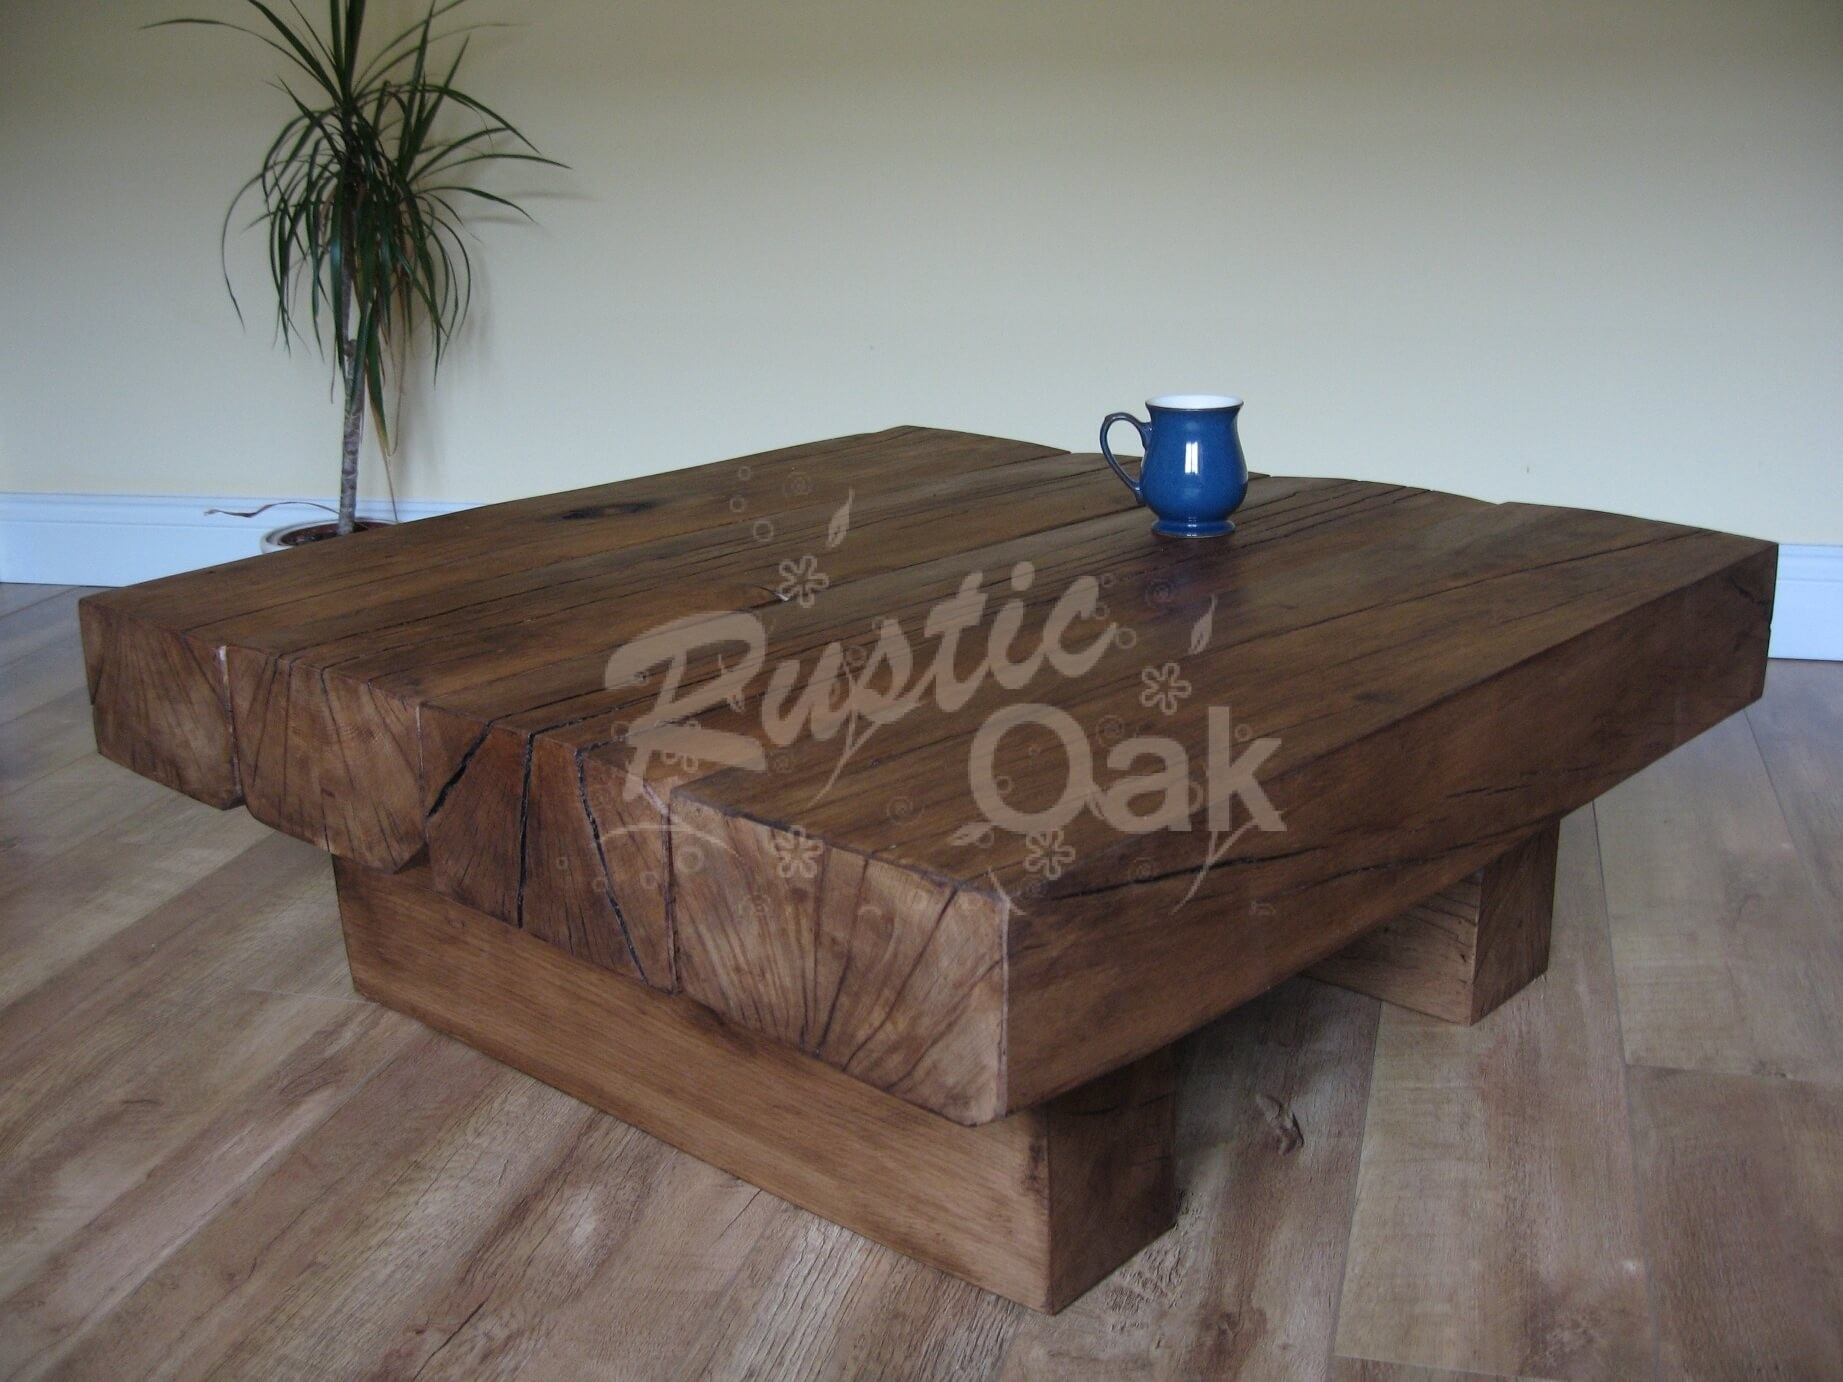 4 Beam Square Coffee Table Rustic Oak